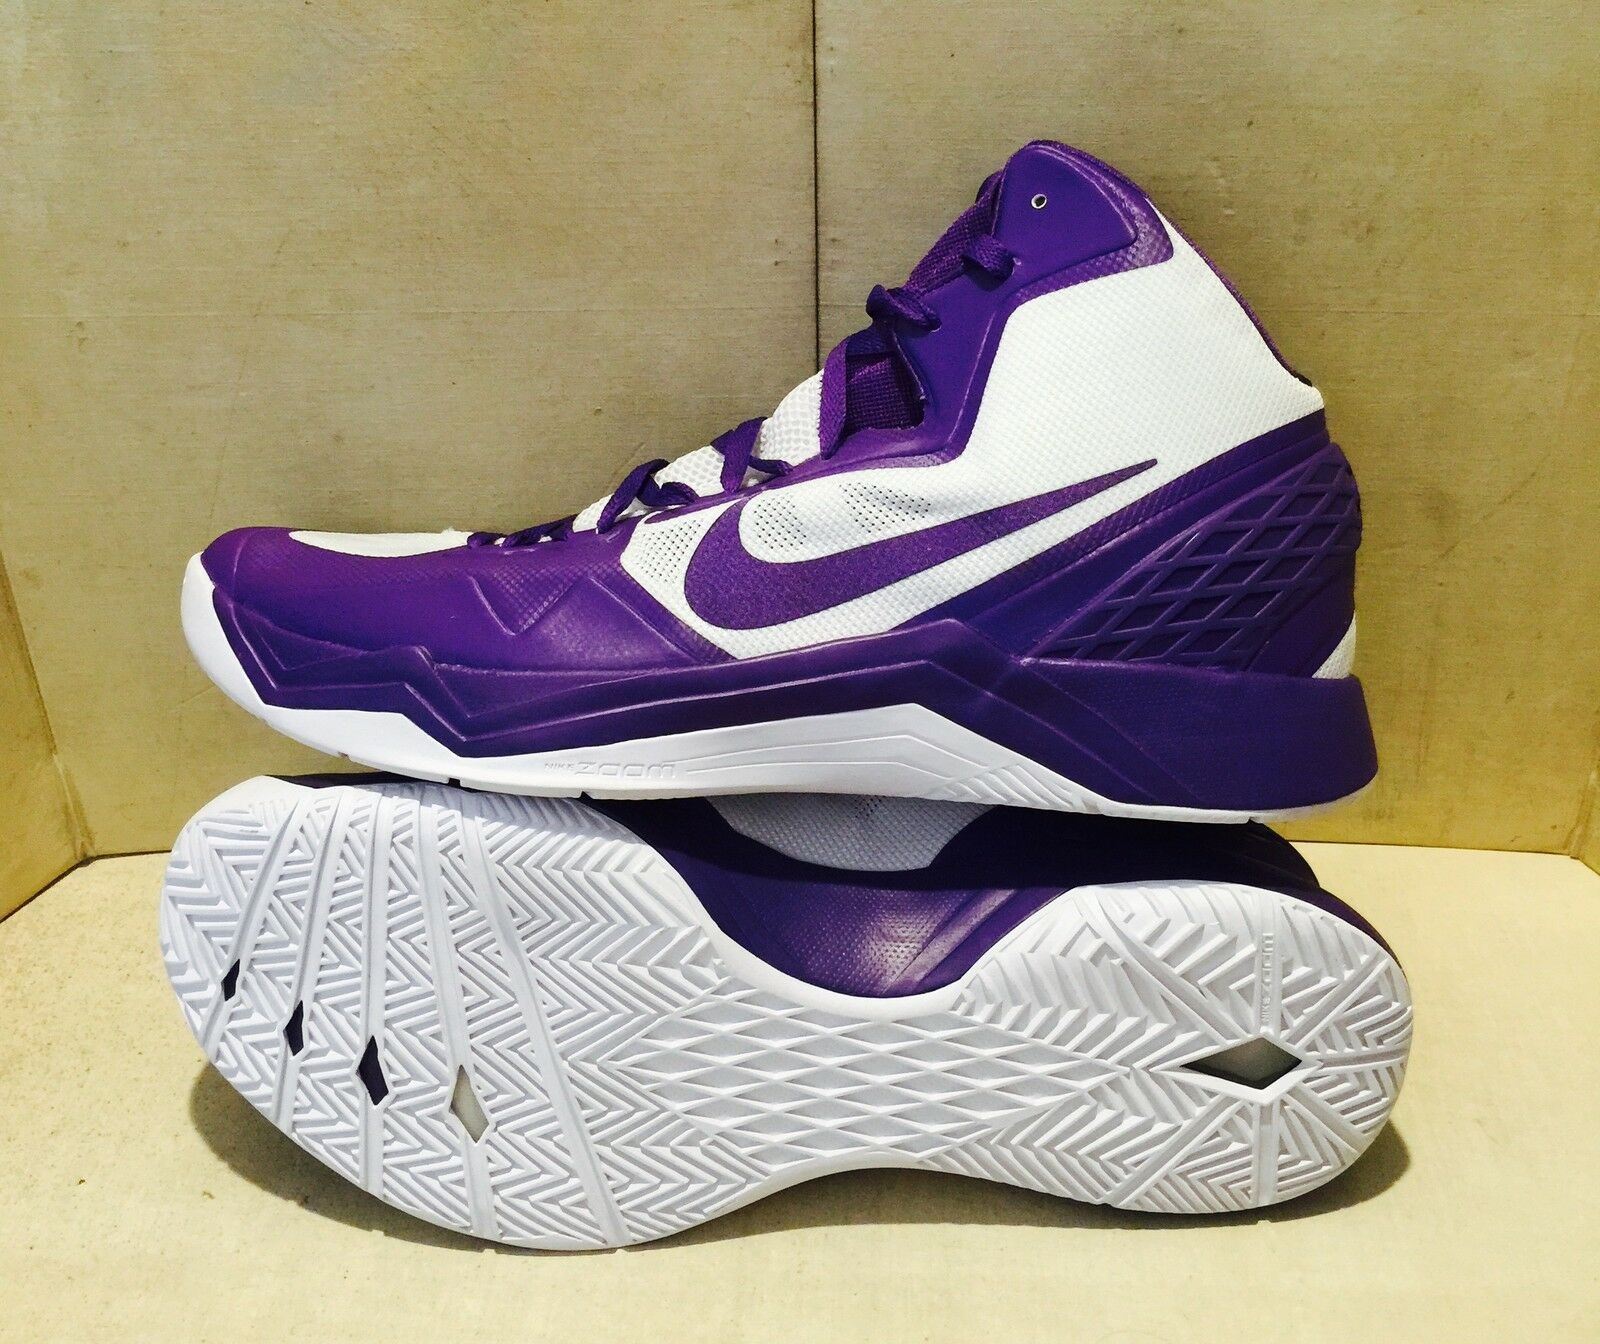 New Nike  Zoom Hyperdisruptor Basketball shoes Sz 17.5  Purple White 548180-107